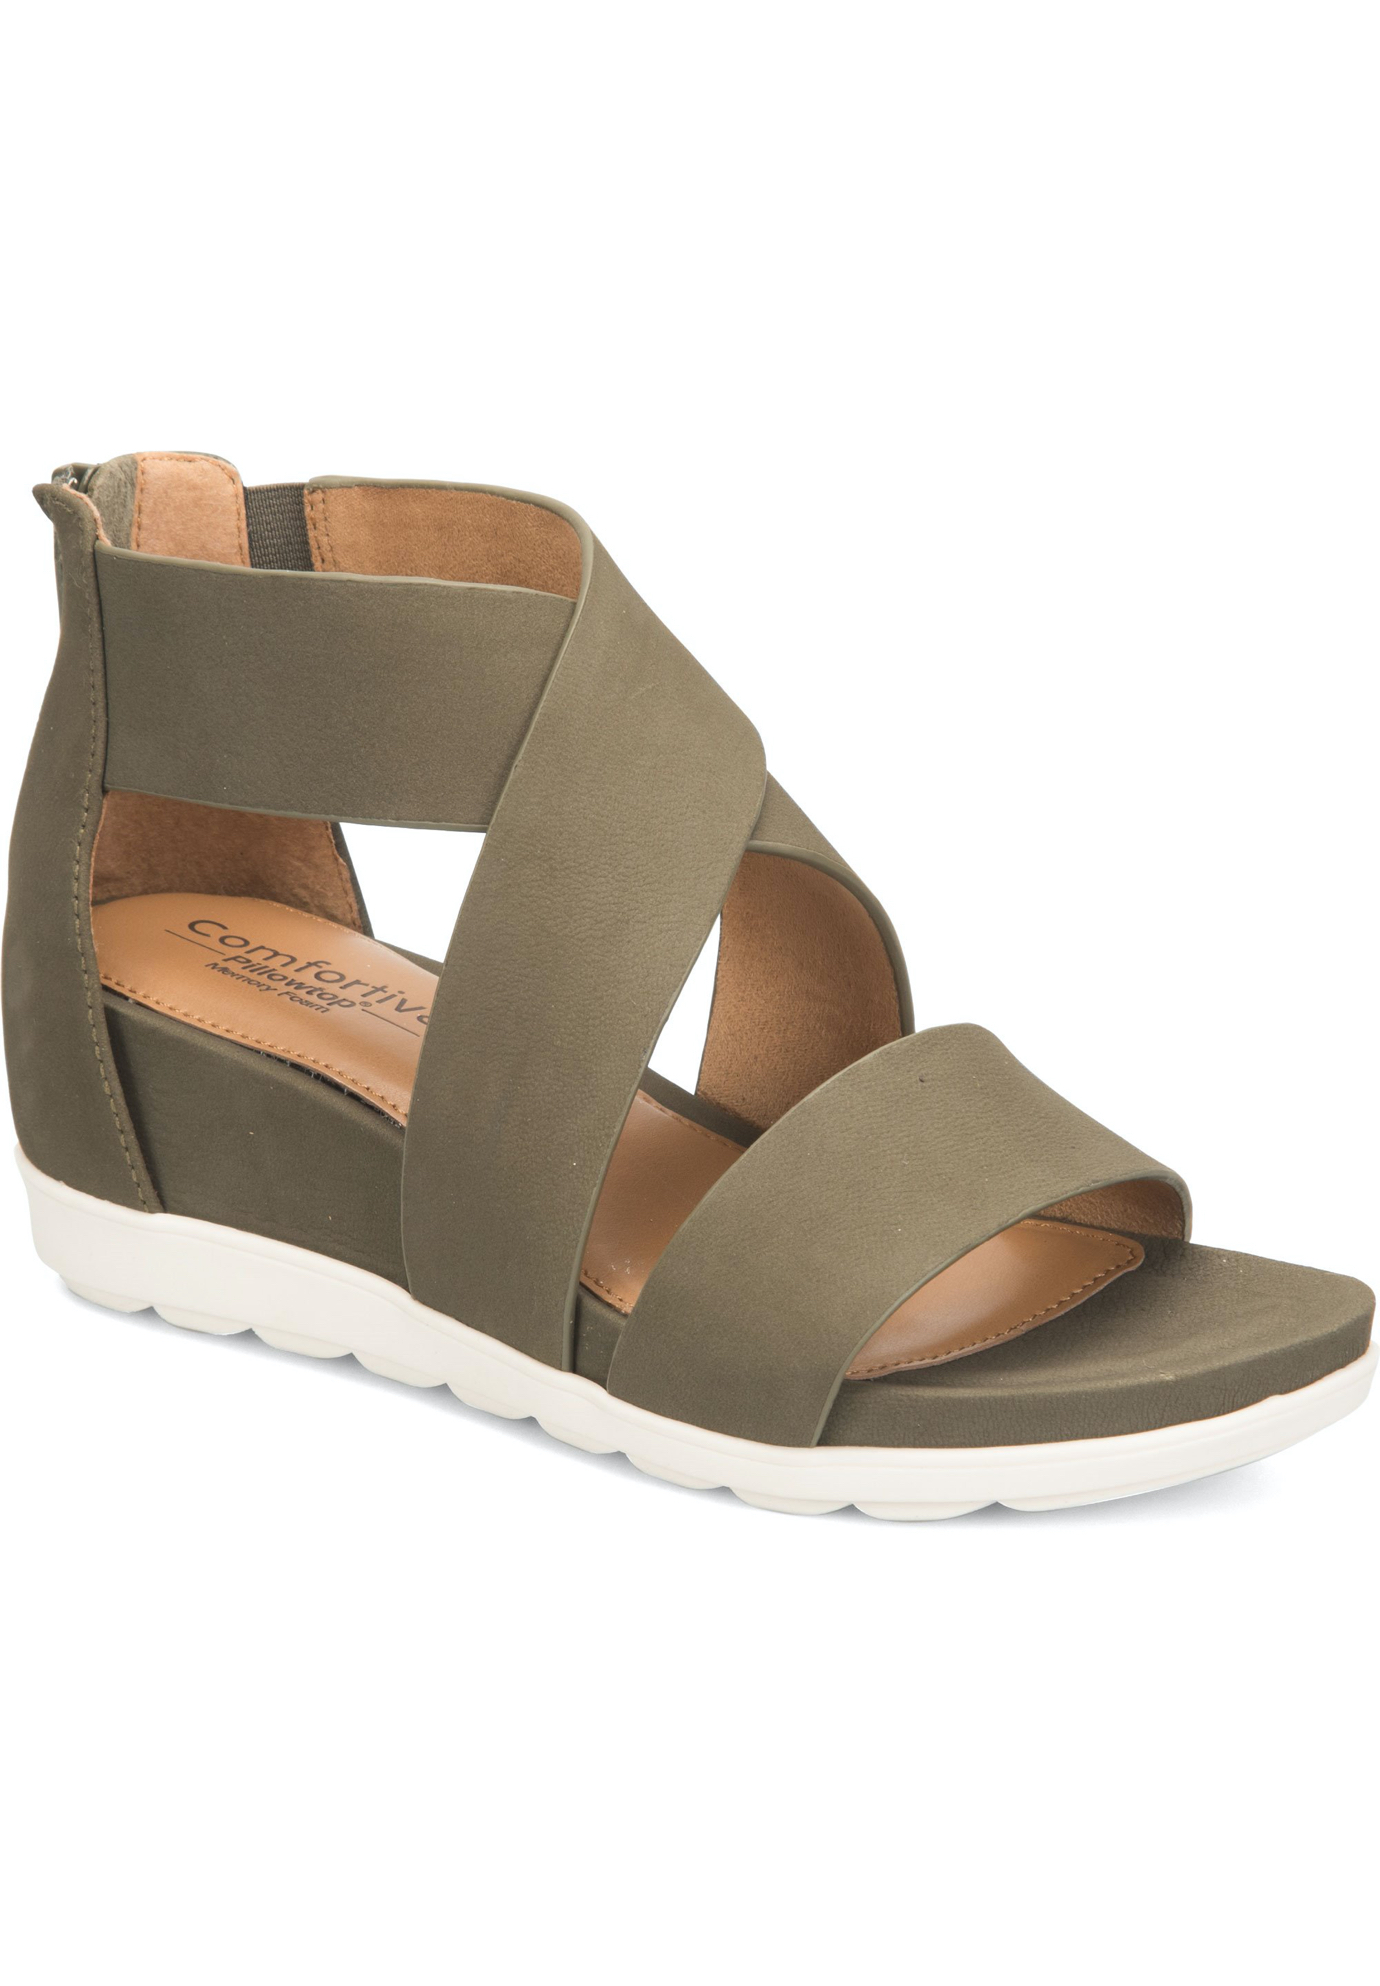 Pacifica Sandals,